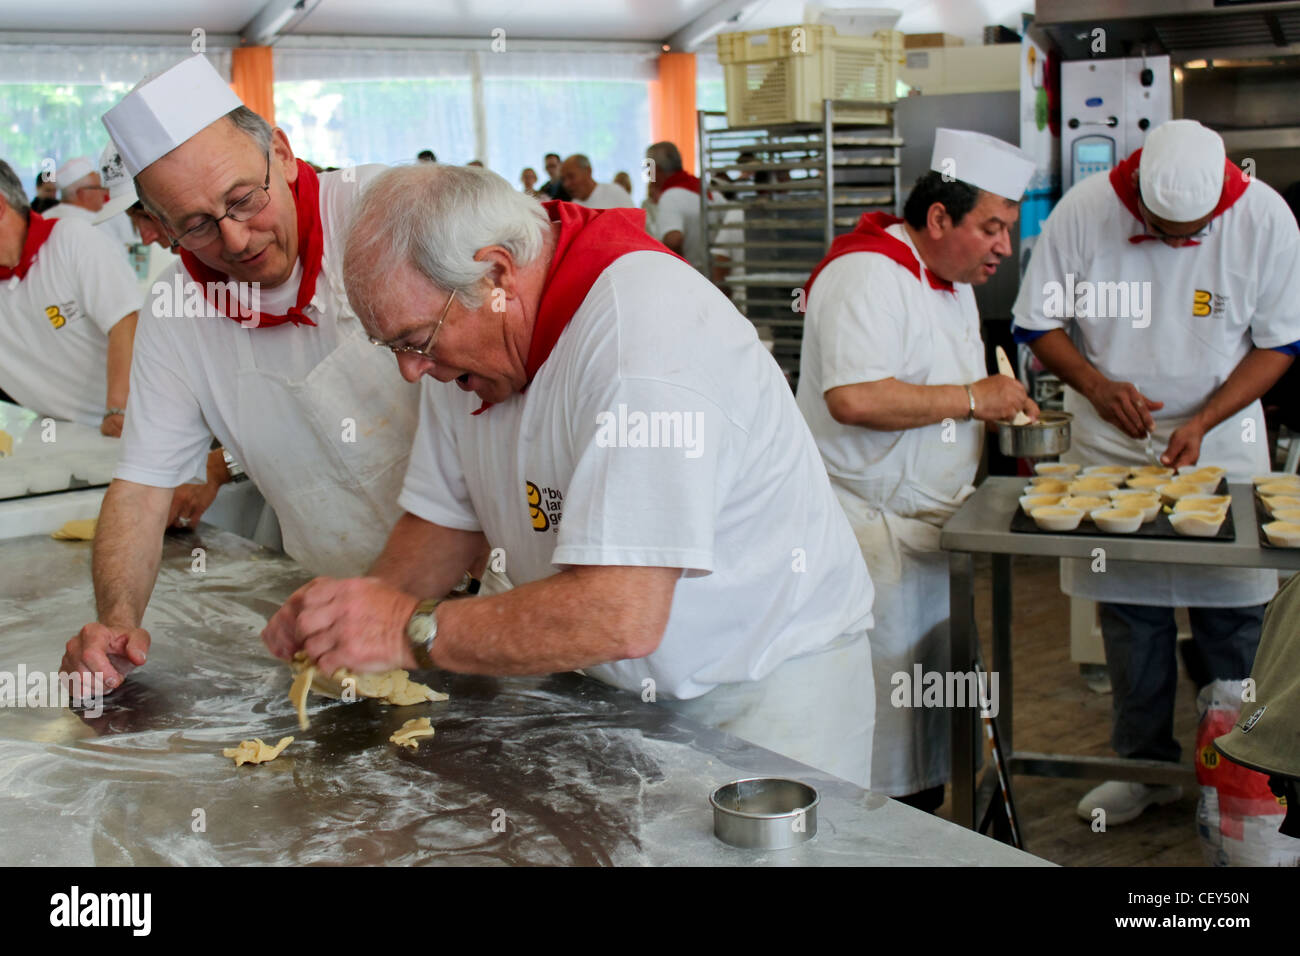 PARIS, FRANCE - MAY 16 - Fête du pain (Holiday of bread) near  Notre-Dame, unidentified bakers make pastries - Stock Image